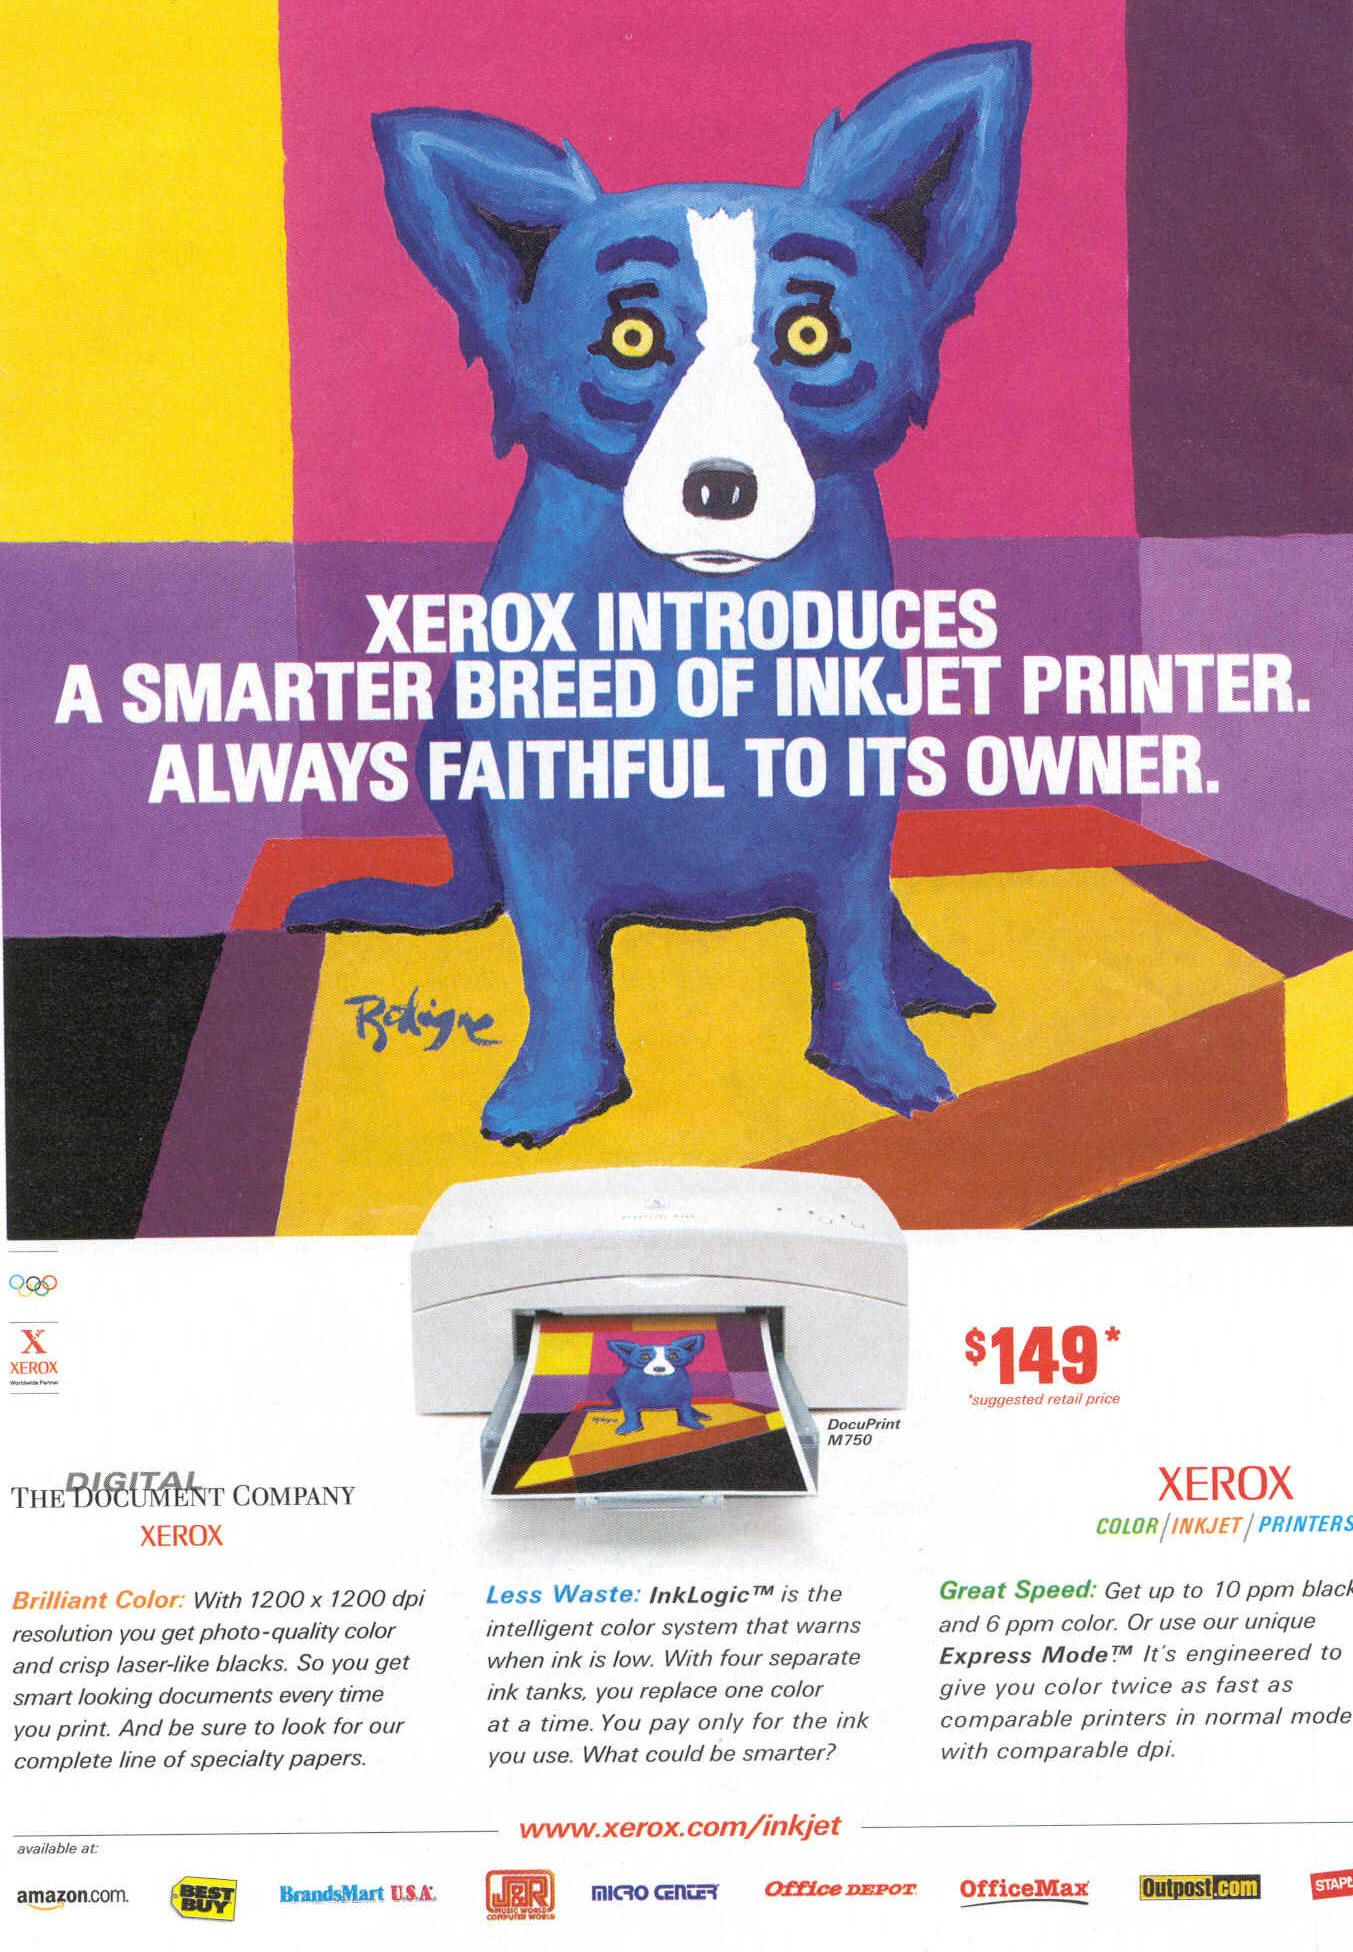 clorox ads over the years Buy clorox 2 free & clear laundry stain remover and color  50 out of 5 stars i have recommended these many times over the years to friends  interest-based ads.